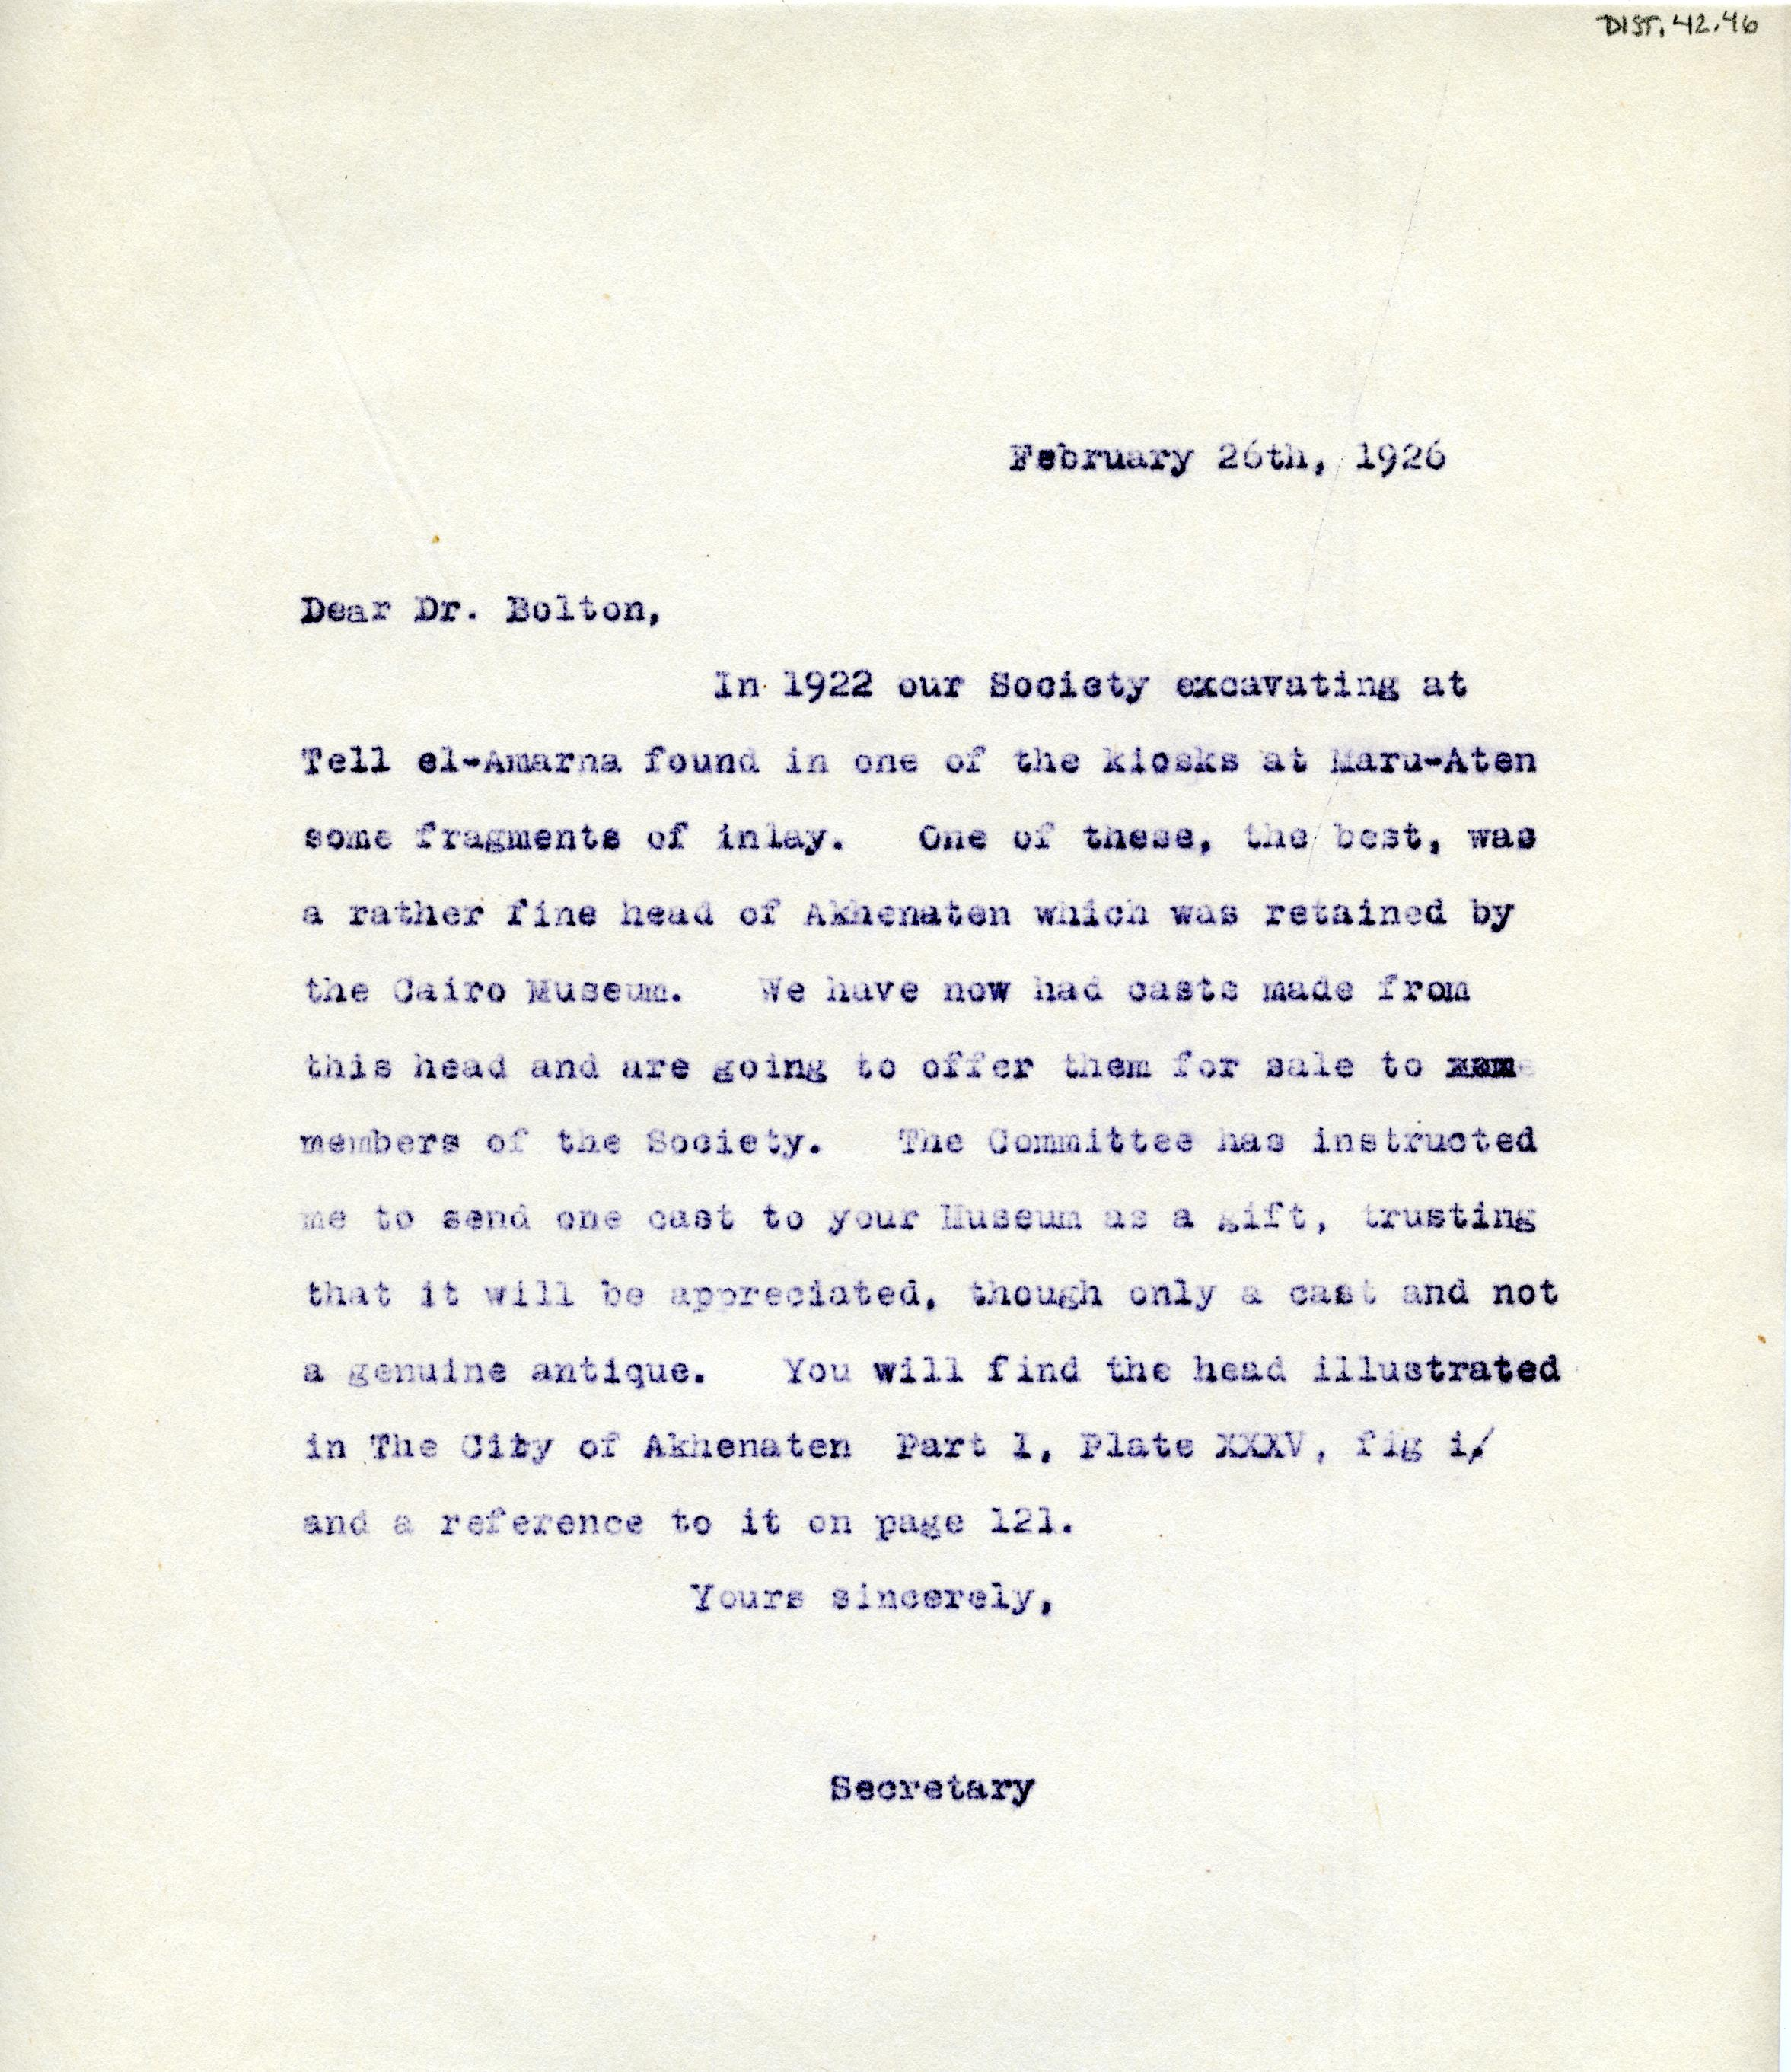 1922-71 Miscellaneous correspondence with museums DIST.42.46